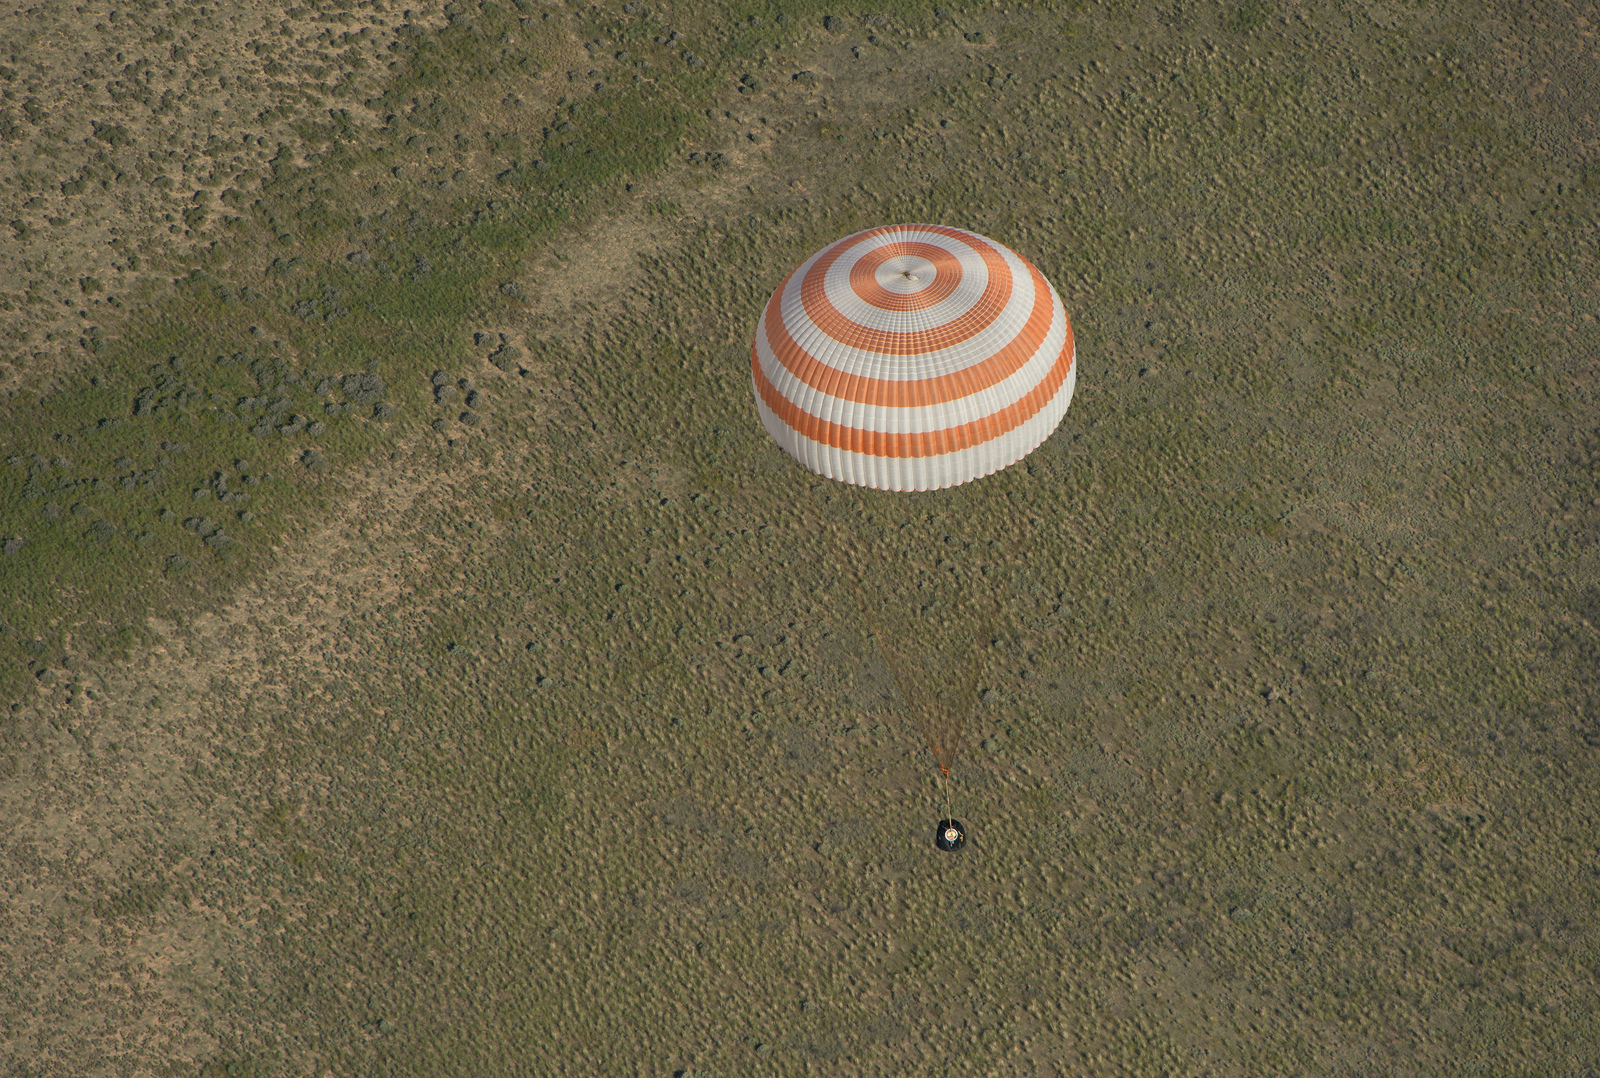 Soyuz TMA-07M Spacecraft Descends Over Kazakhstan